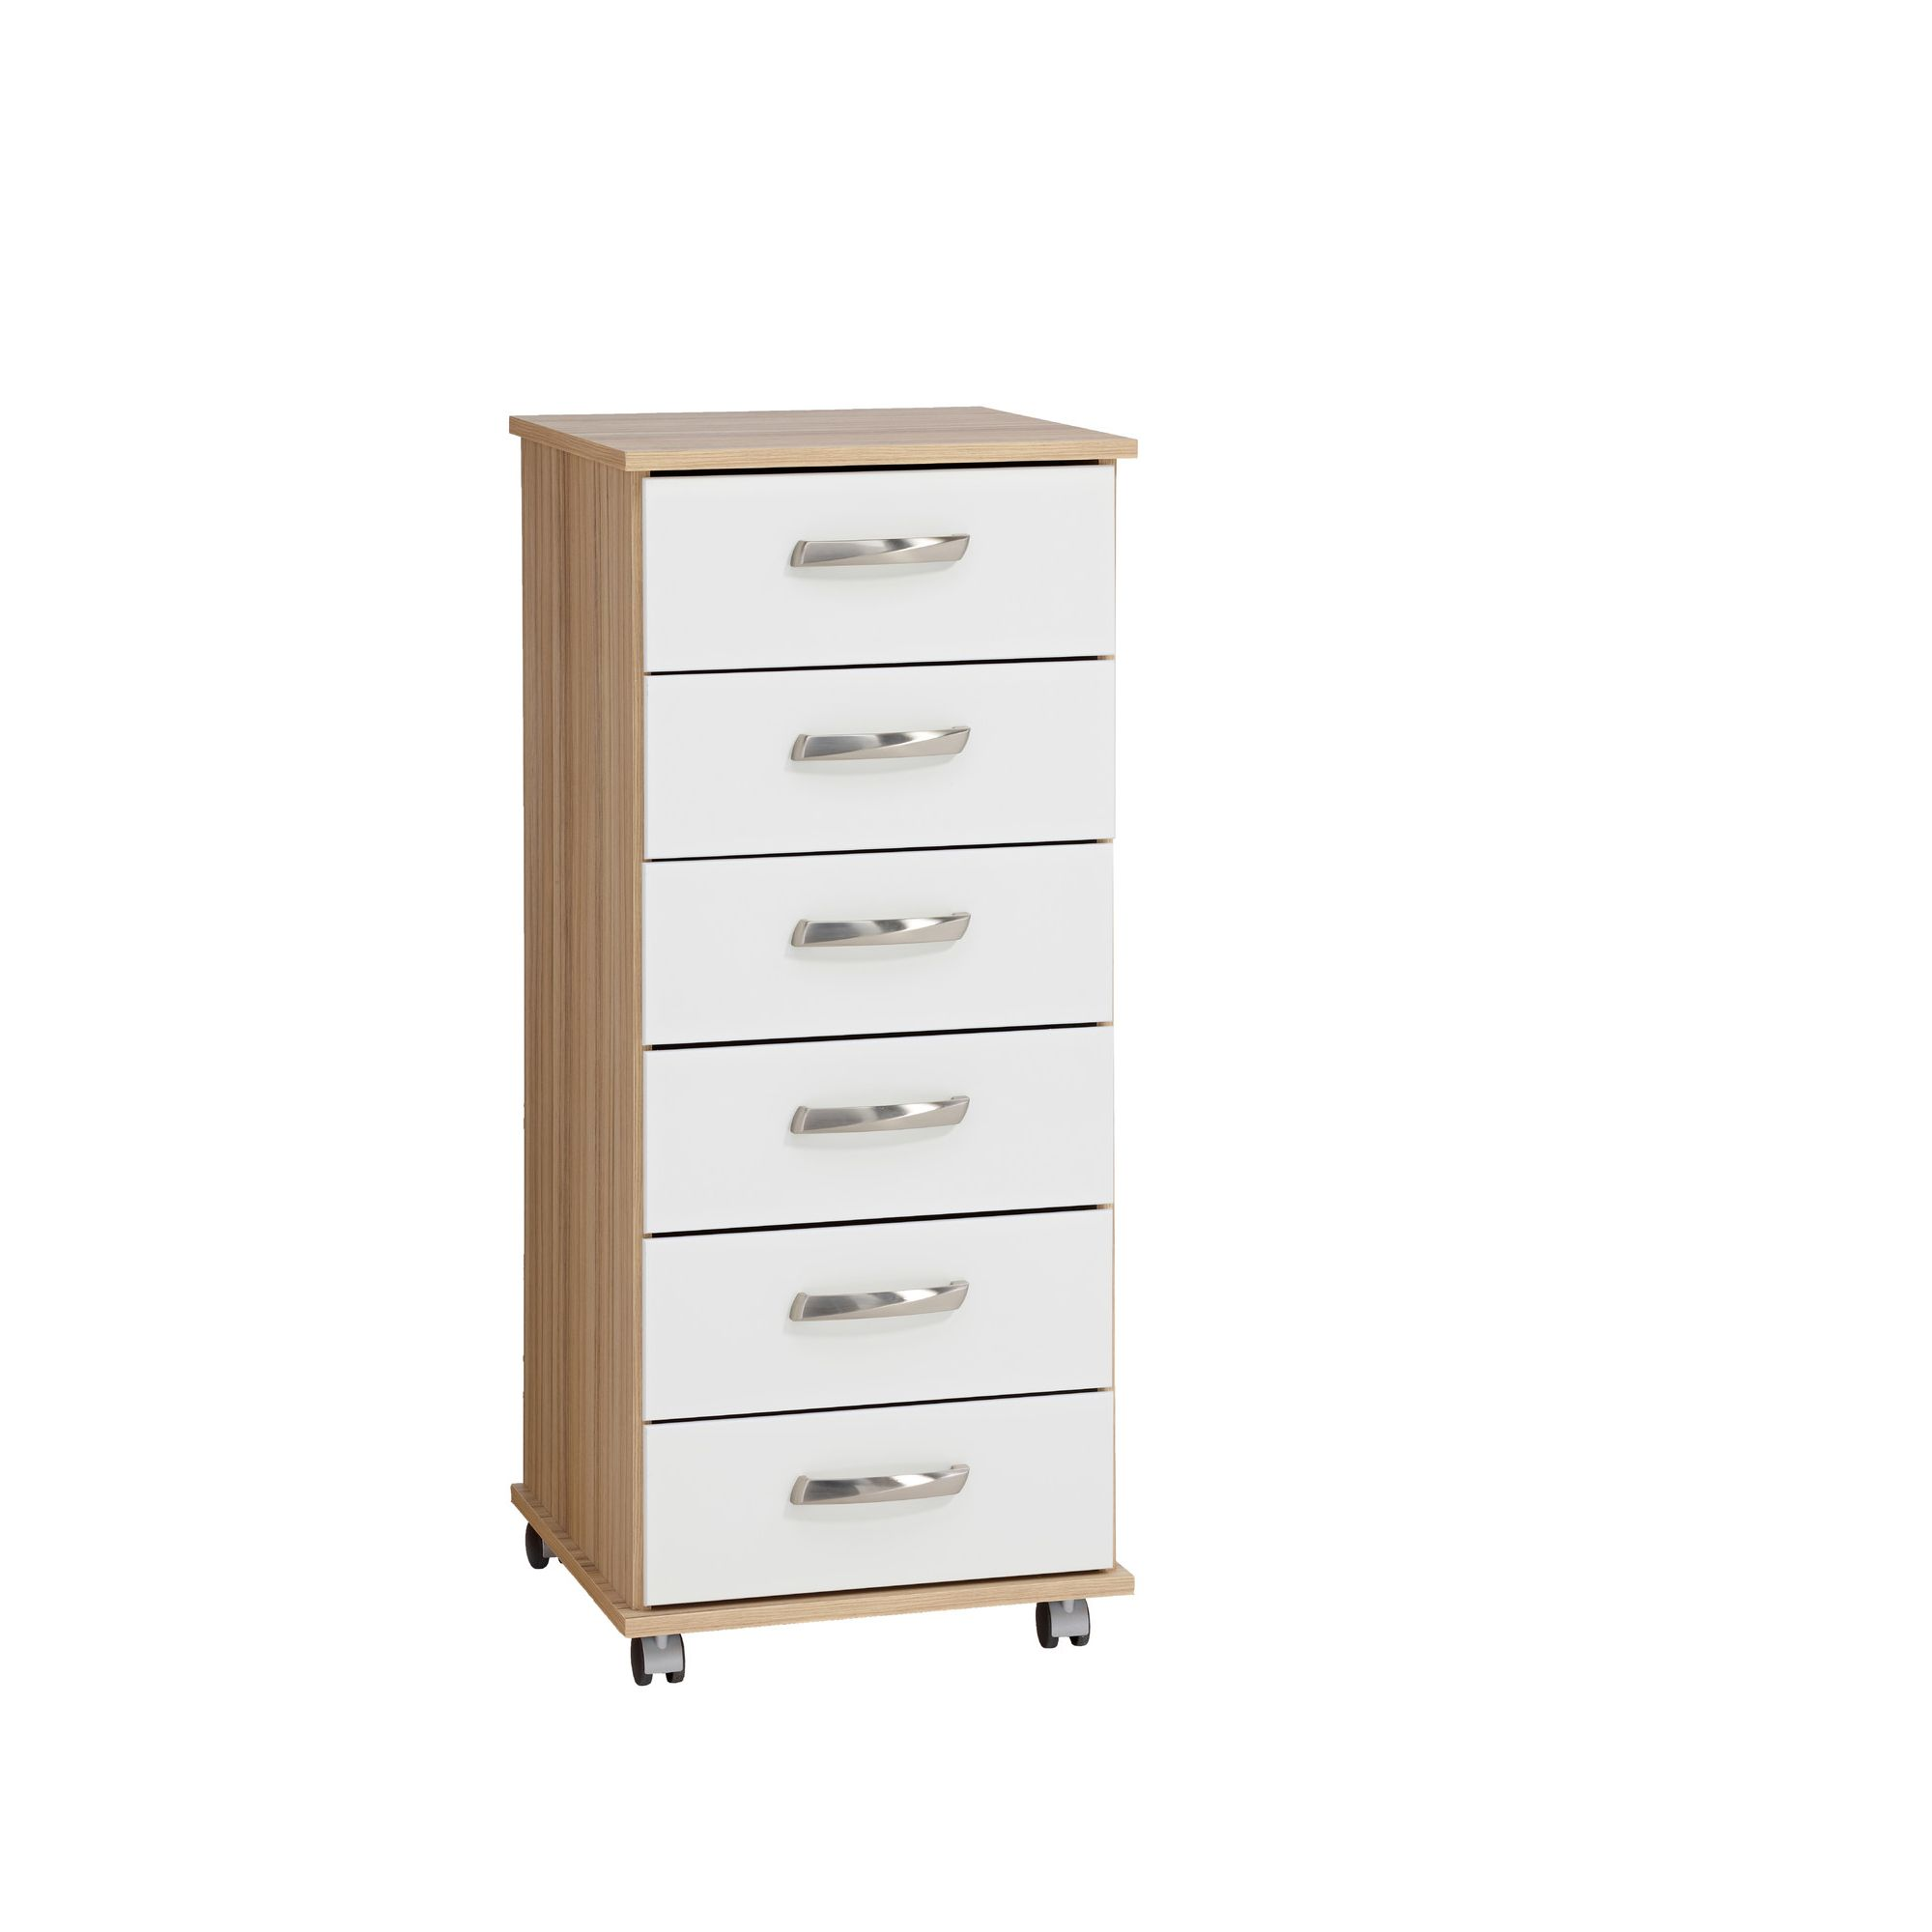 Ideal Furniture Regal 6 Drawer Slim in white at Tesco Direct